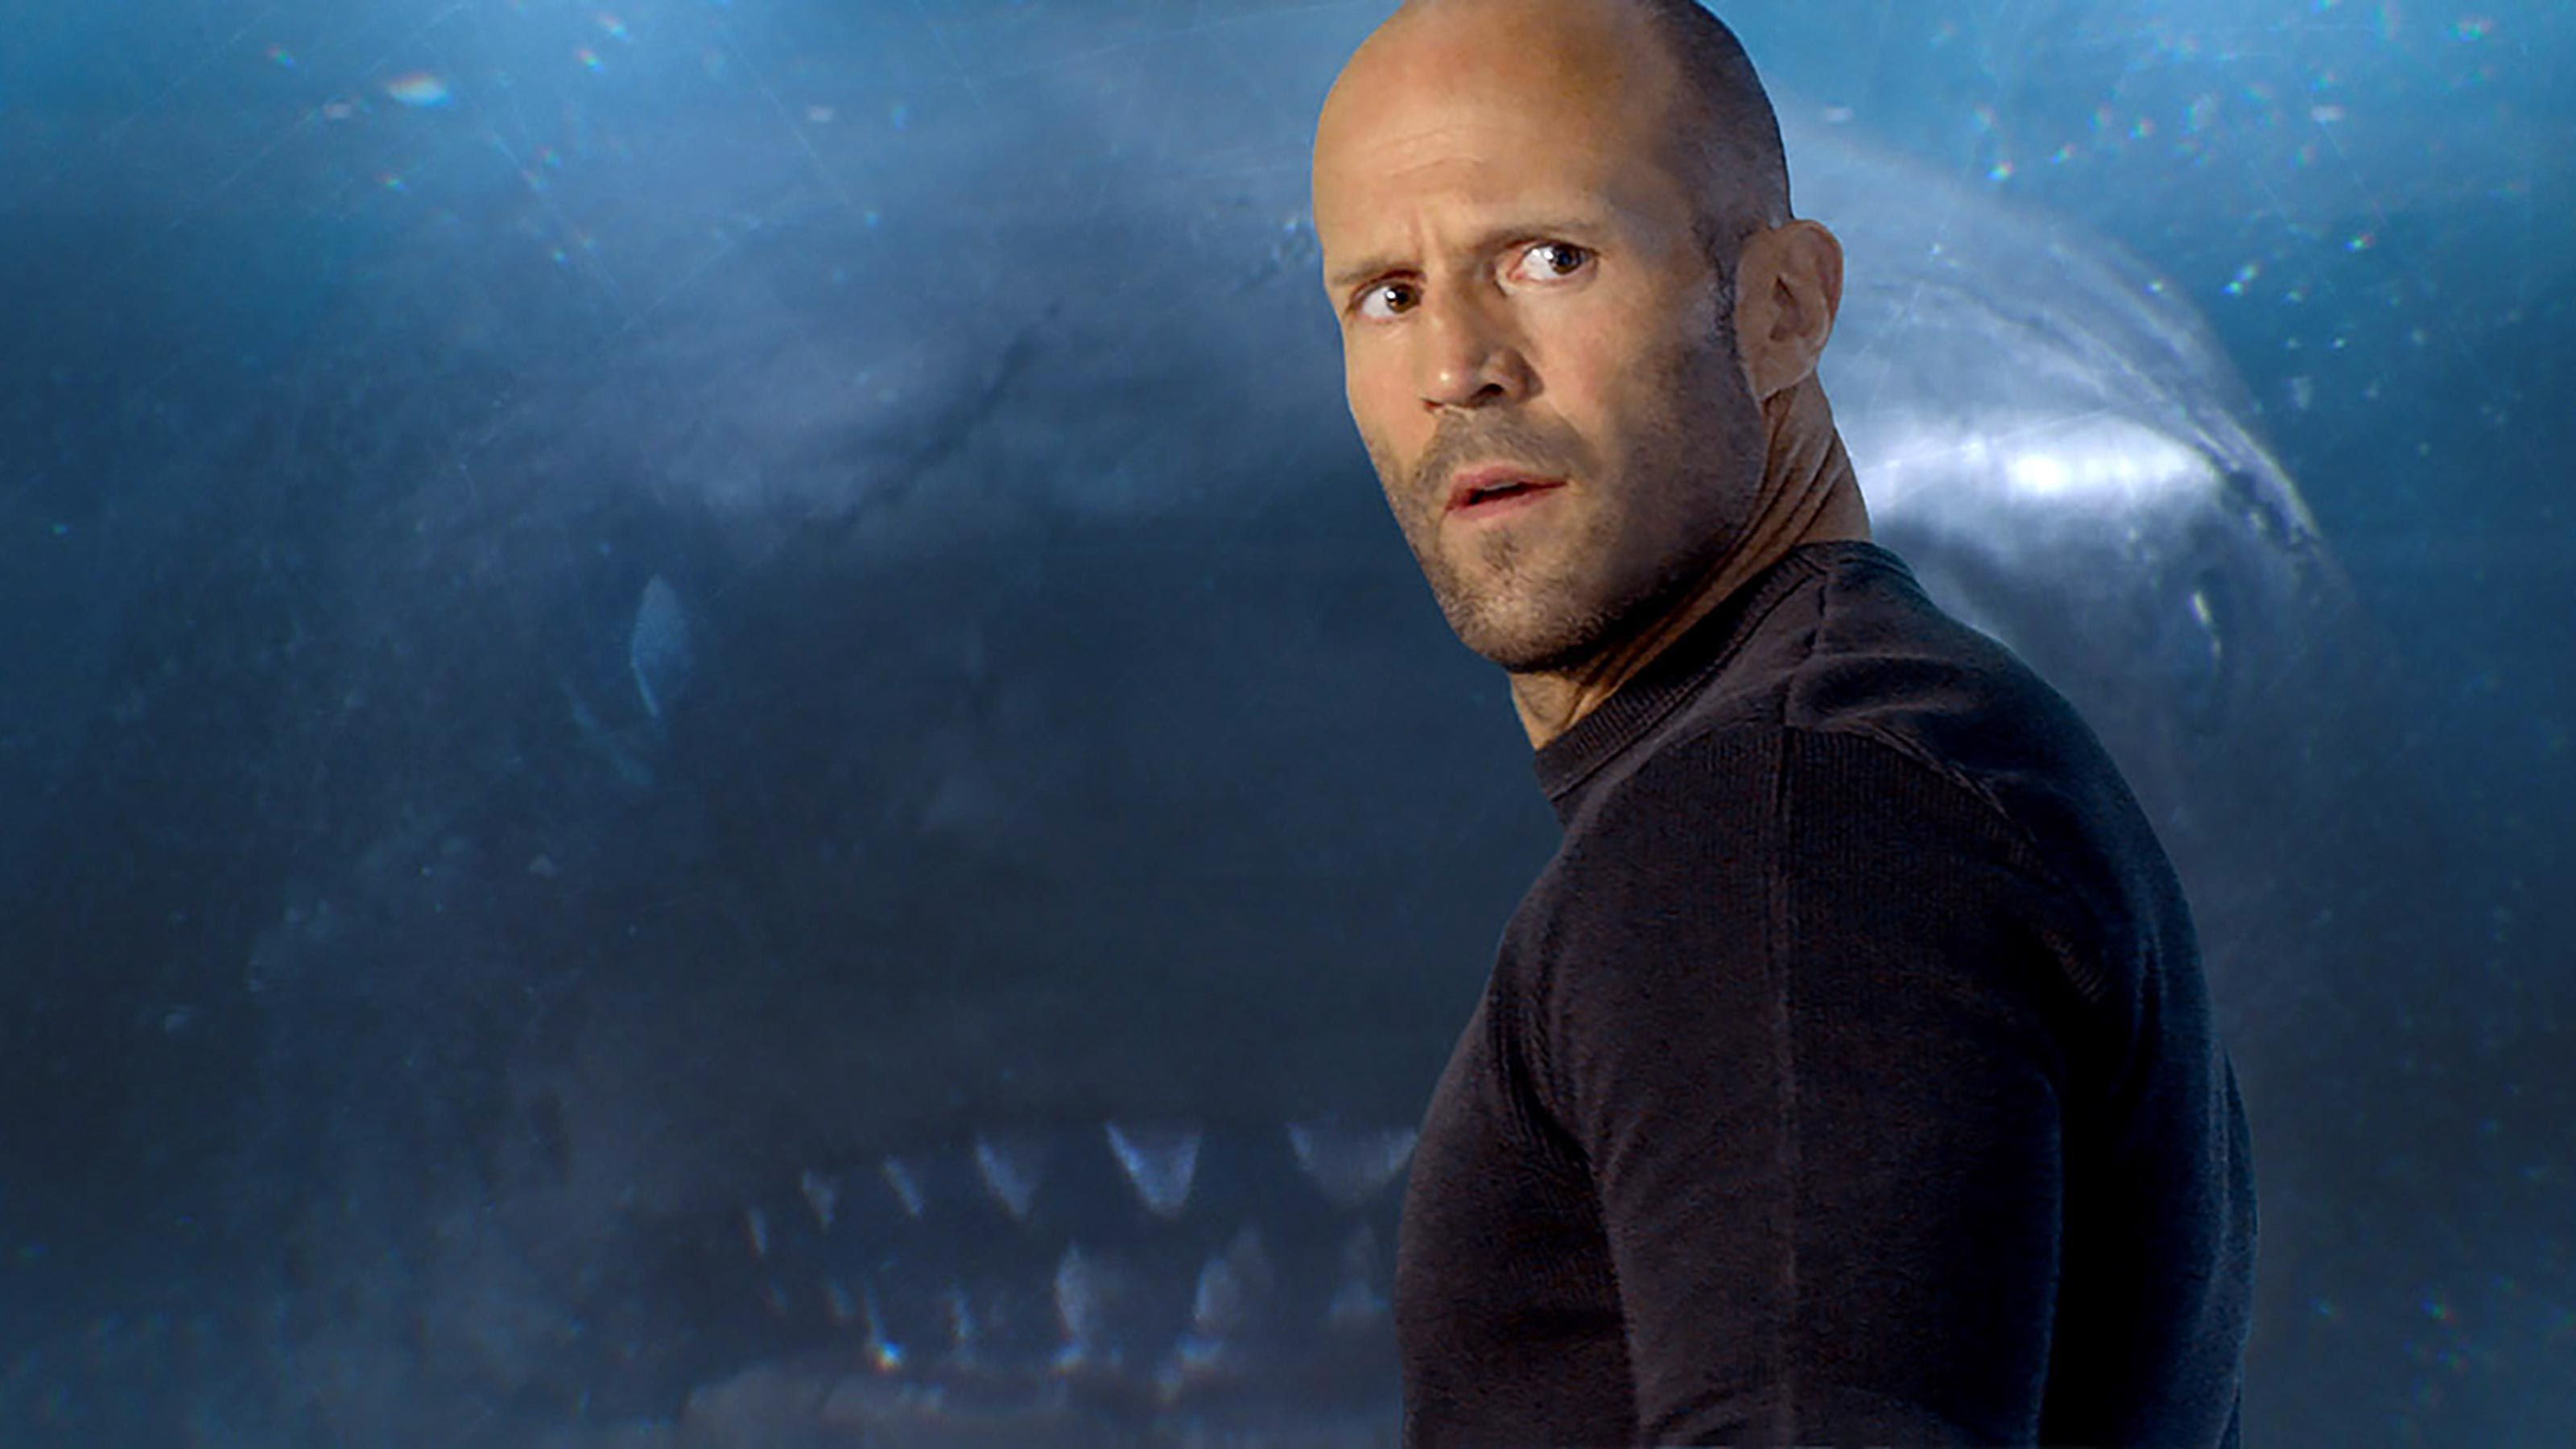 The Meg Trailer: Jason Statham Battles a Giant Shark | Collider